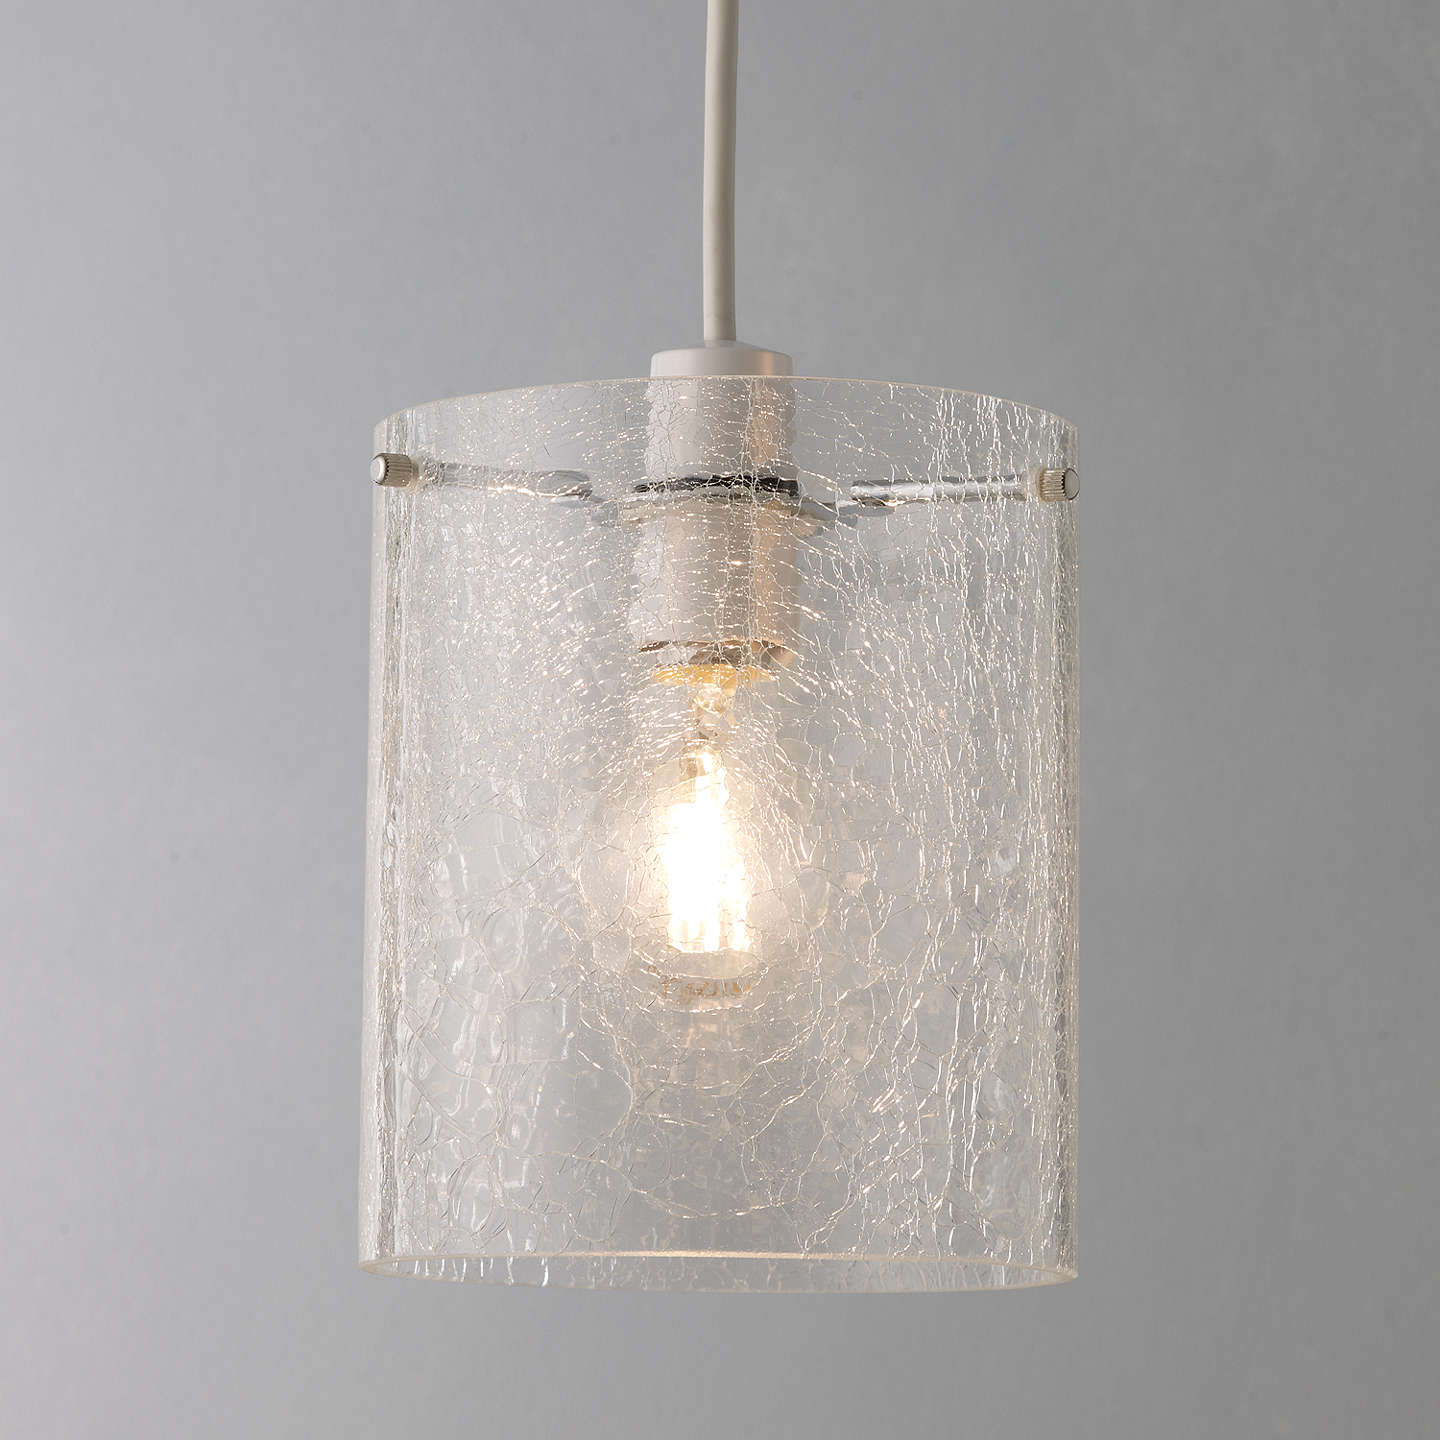 Ceiling Lamp Shade Doesn T Fit: John Lewis Easy-to-fit Dallas Crackle Glass Ceiling Shade